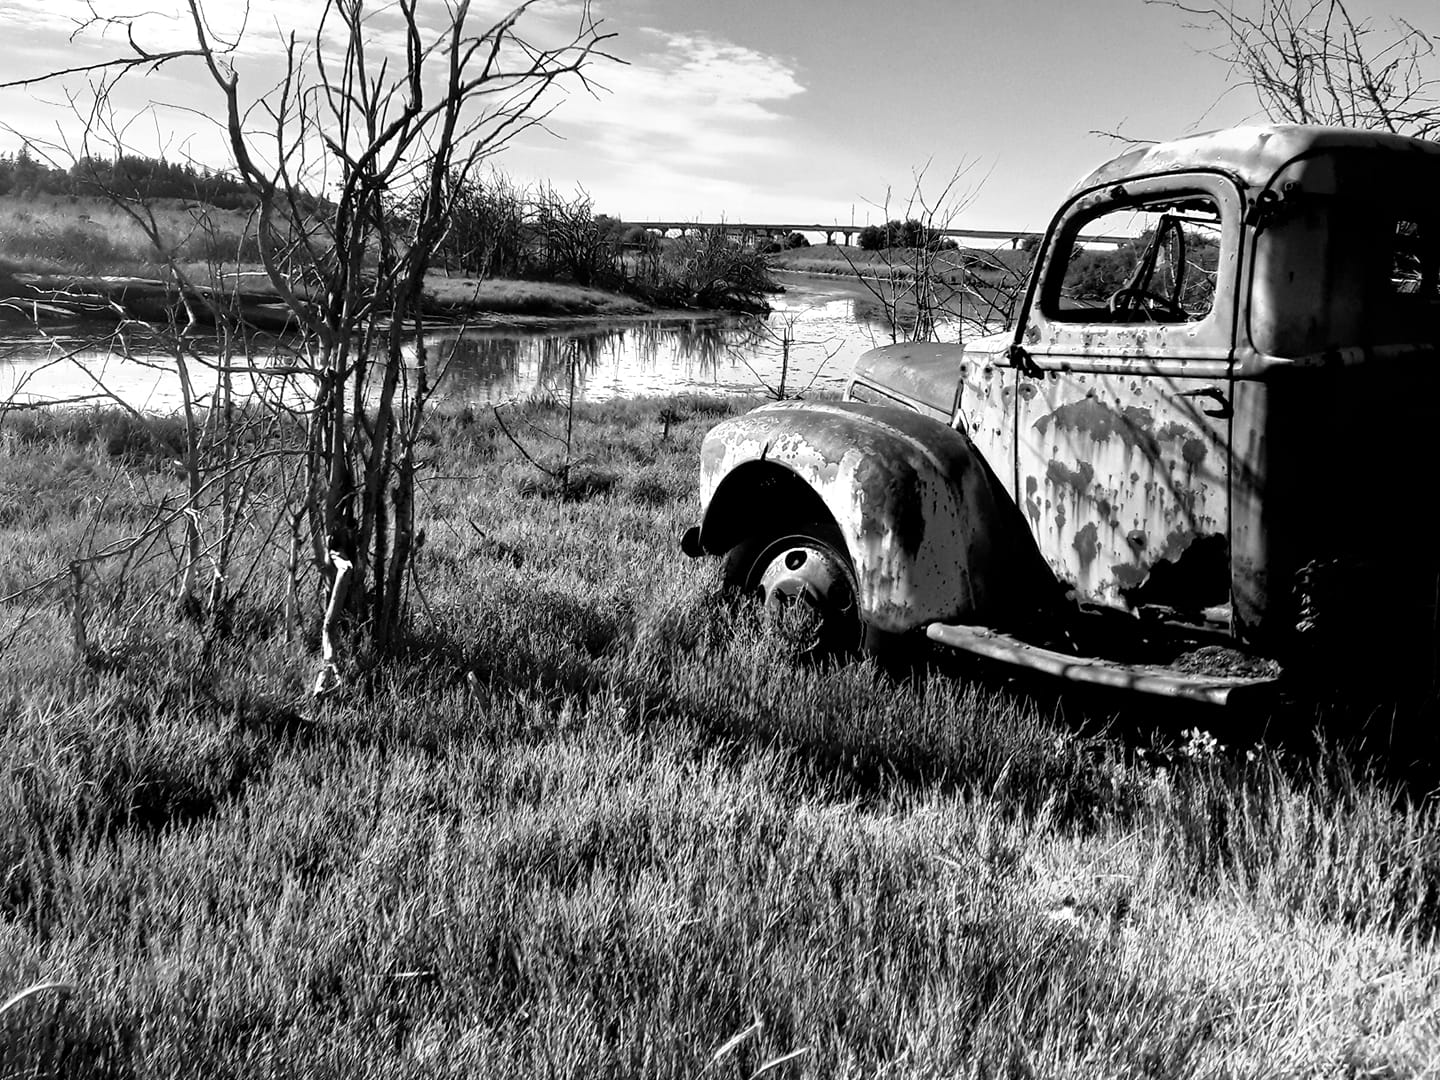 Abandoned truck in black and white by Kyle Williams 2020